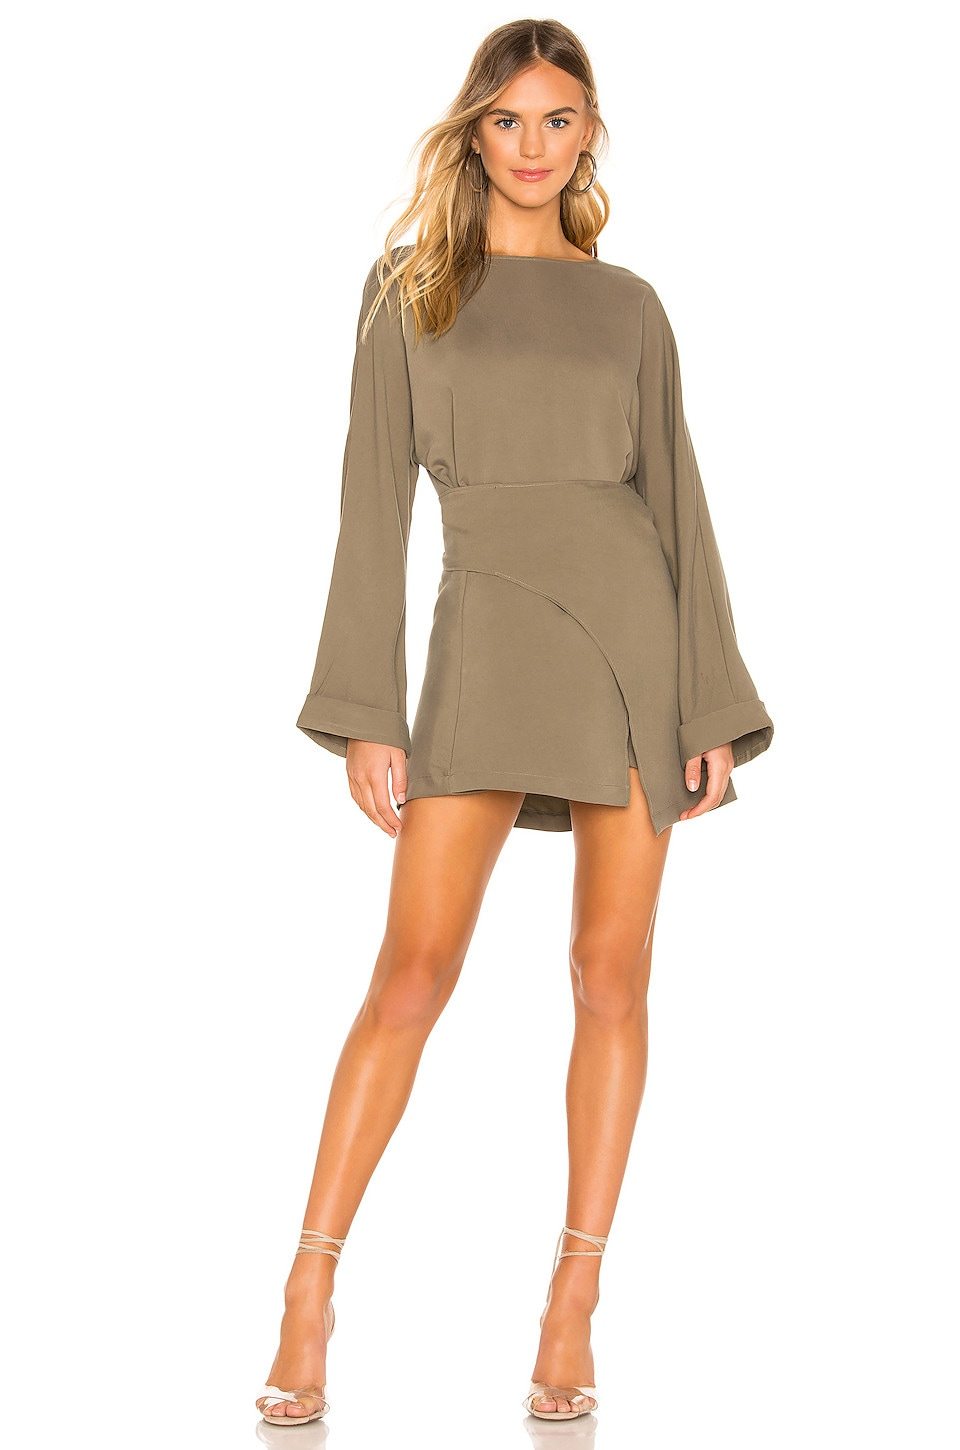 L'Academie The Shannon Mini Dress in Olivine Green